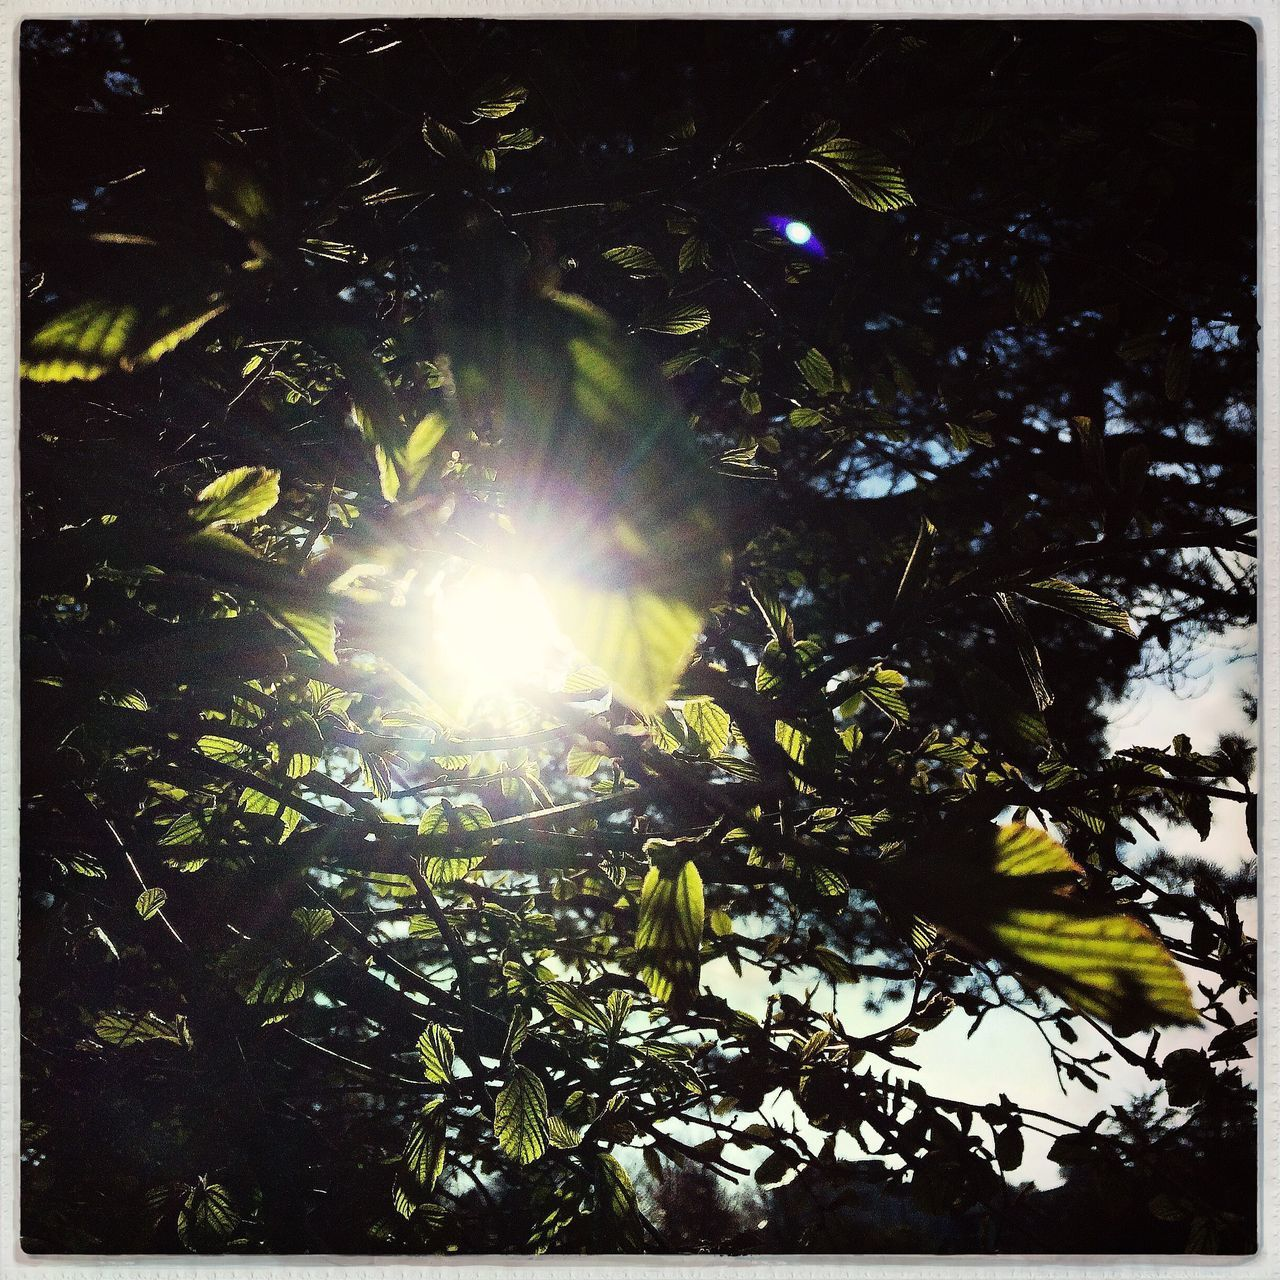 Sun Growth Leaf Nature Sunlight Sunbeam Back Lit Beauty In Nature Plant Low Angle View Tree Leaves No People Branch Outdoors Freshness Close-up Day